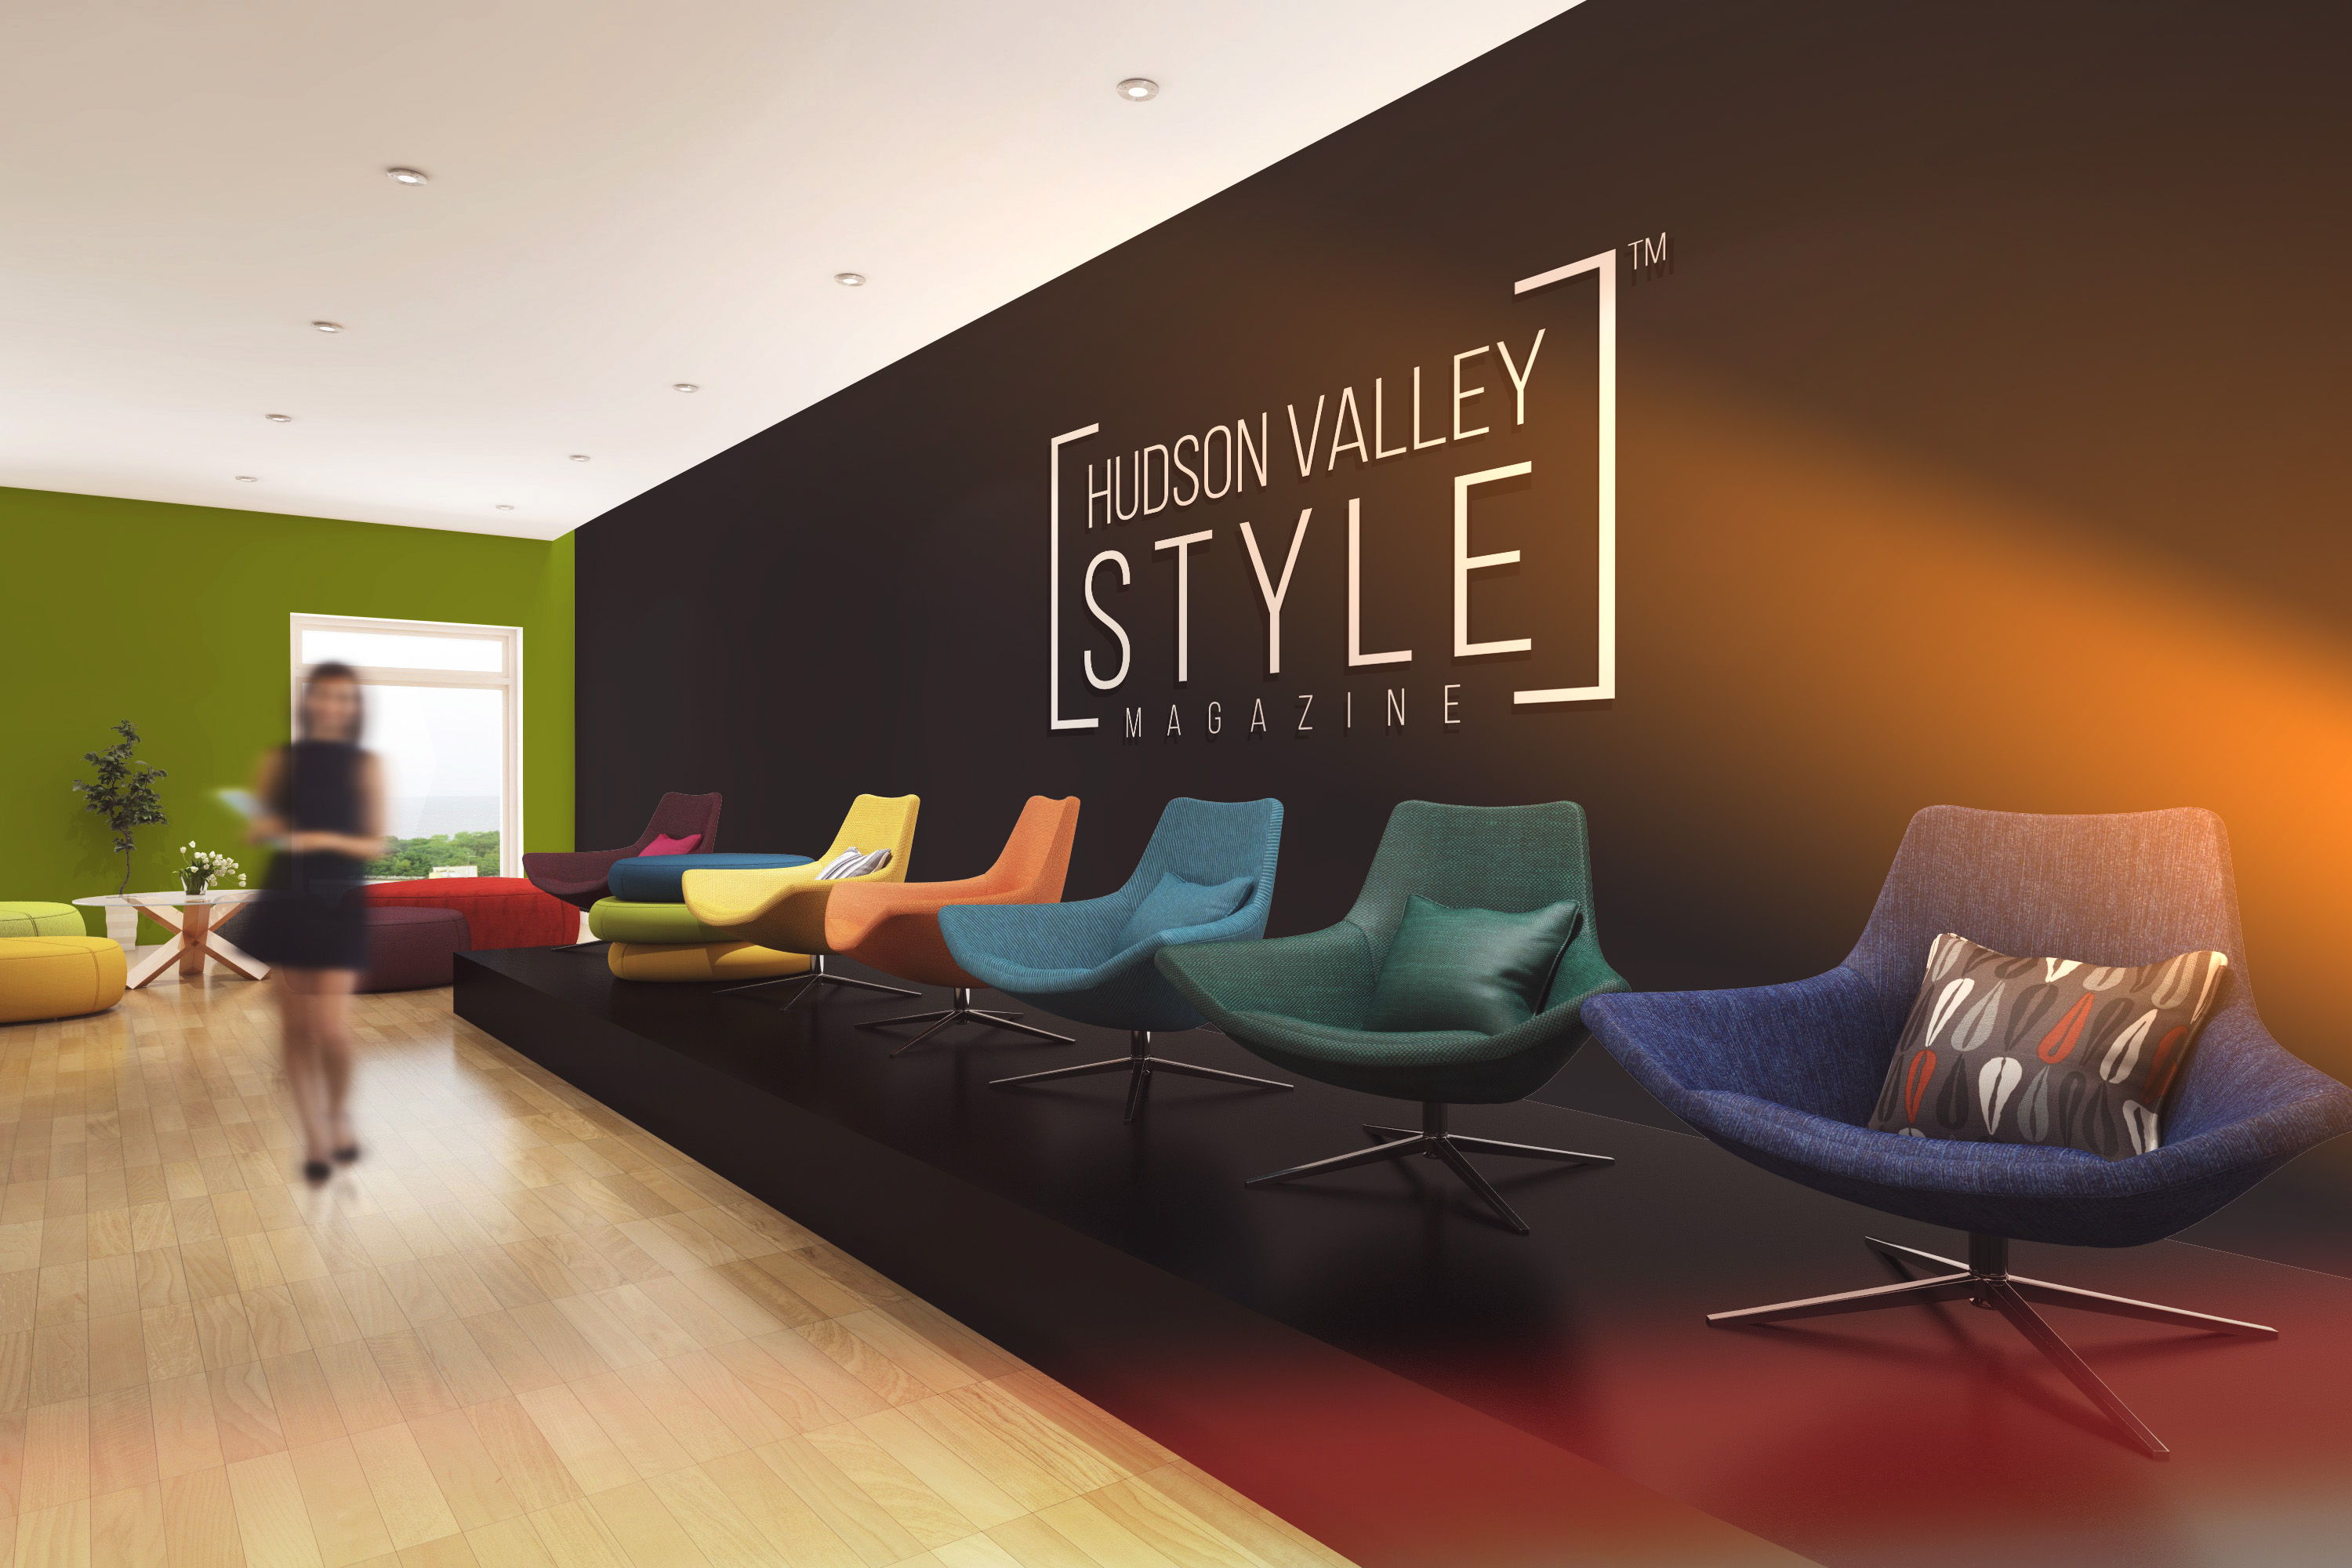 Hudson Valley Style Magazine - Experience the Magic of Hudson Valley